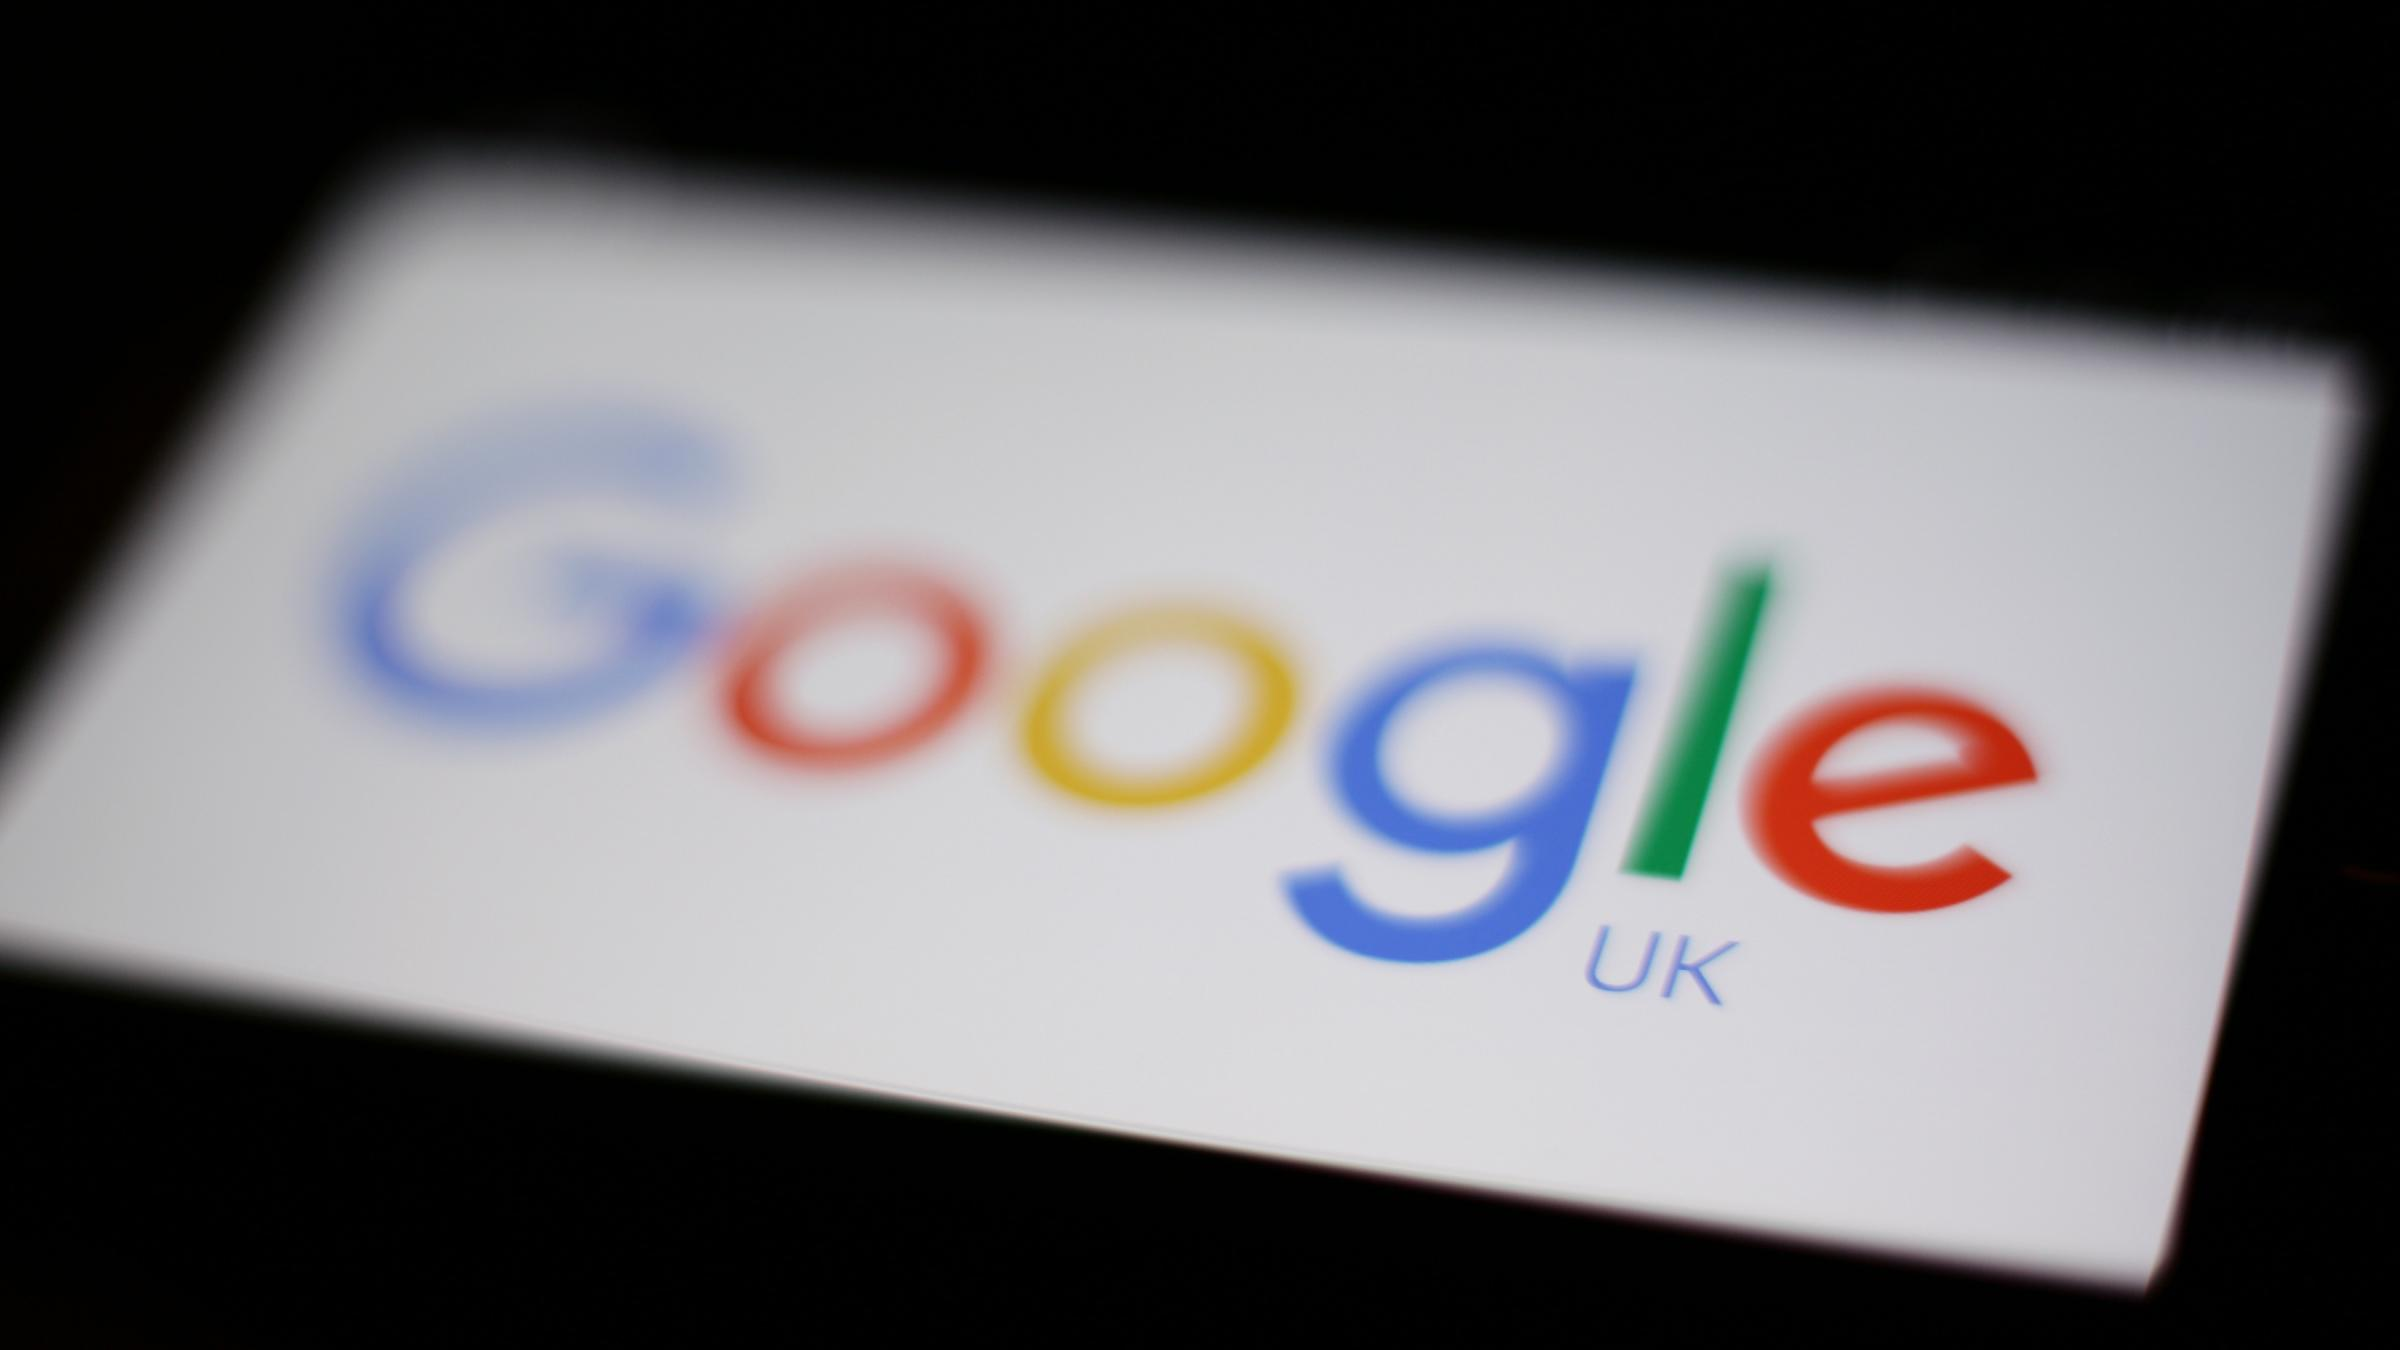 More must be done about extremist content online, says Google